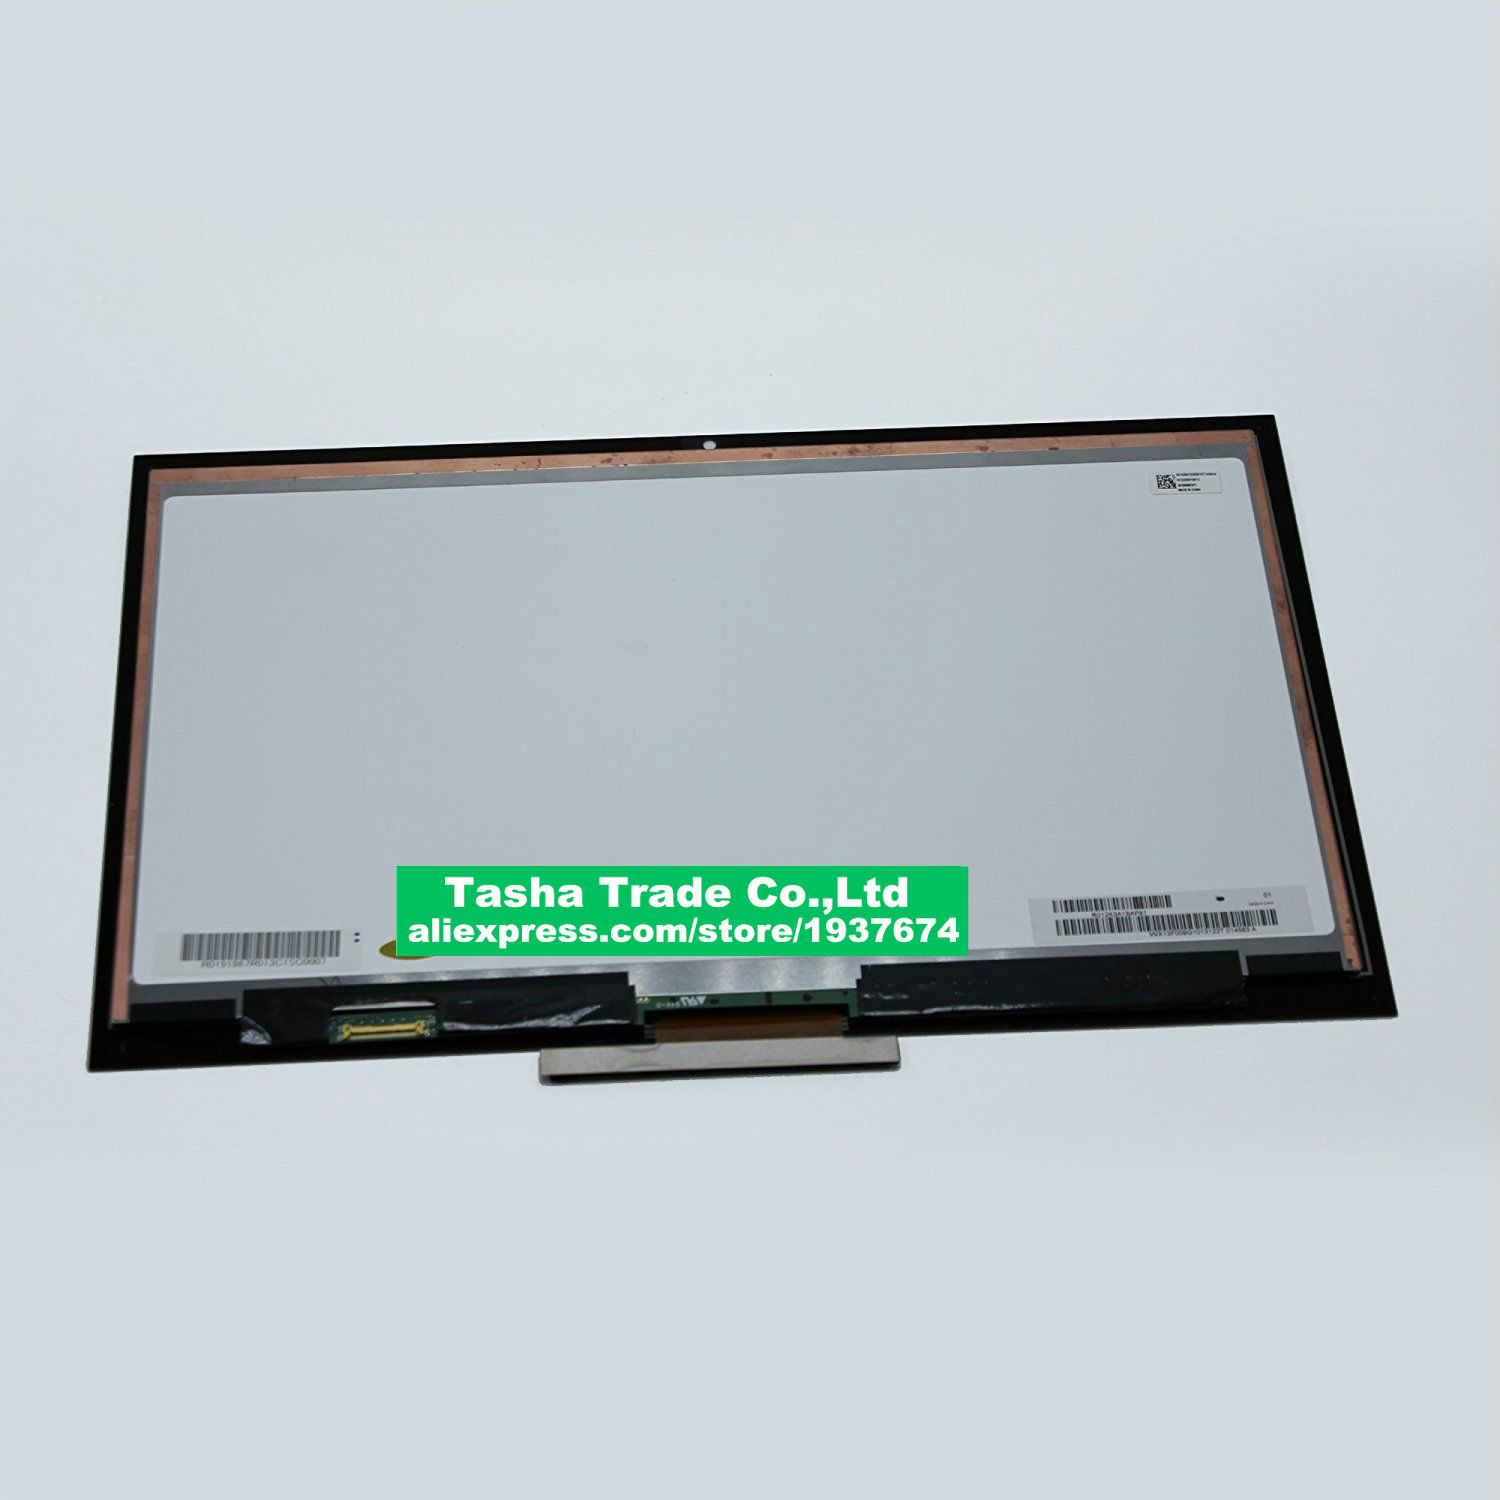 13.3 LCD LED Touch Screen Assembly For Sony Vaio Pro 13 SVP132 SVP 132 SVP132A1CW SVP132A1Cl new 11 6 for sony vaio pro 11 touch screen digitizer assembly lcd vvx11f009g10g00 1920 1080